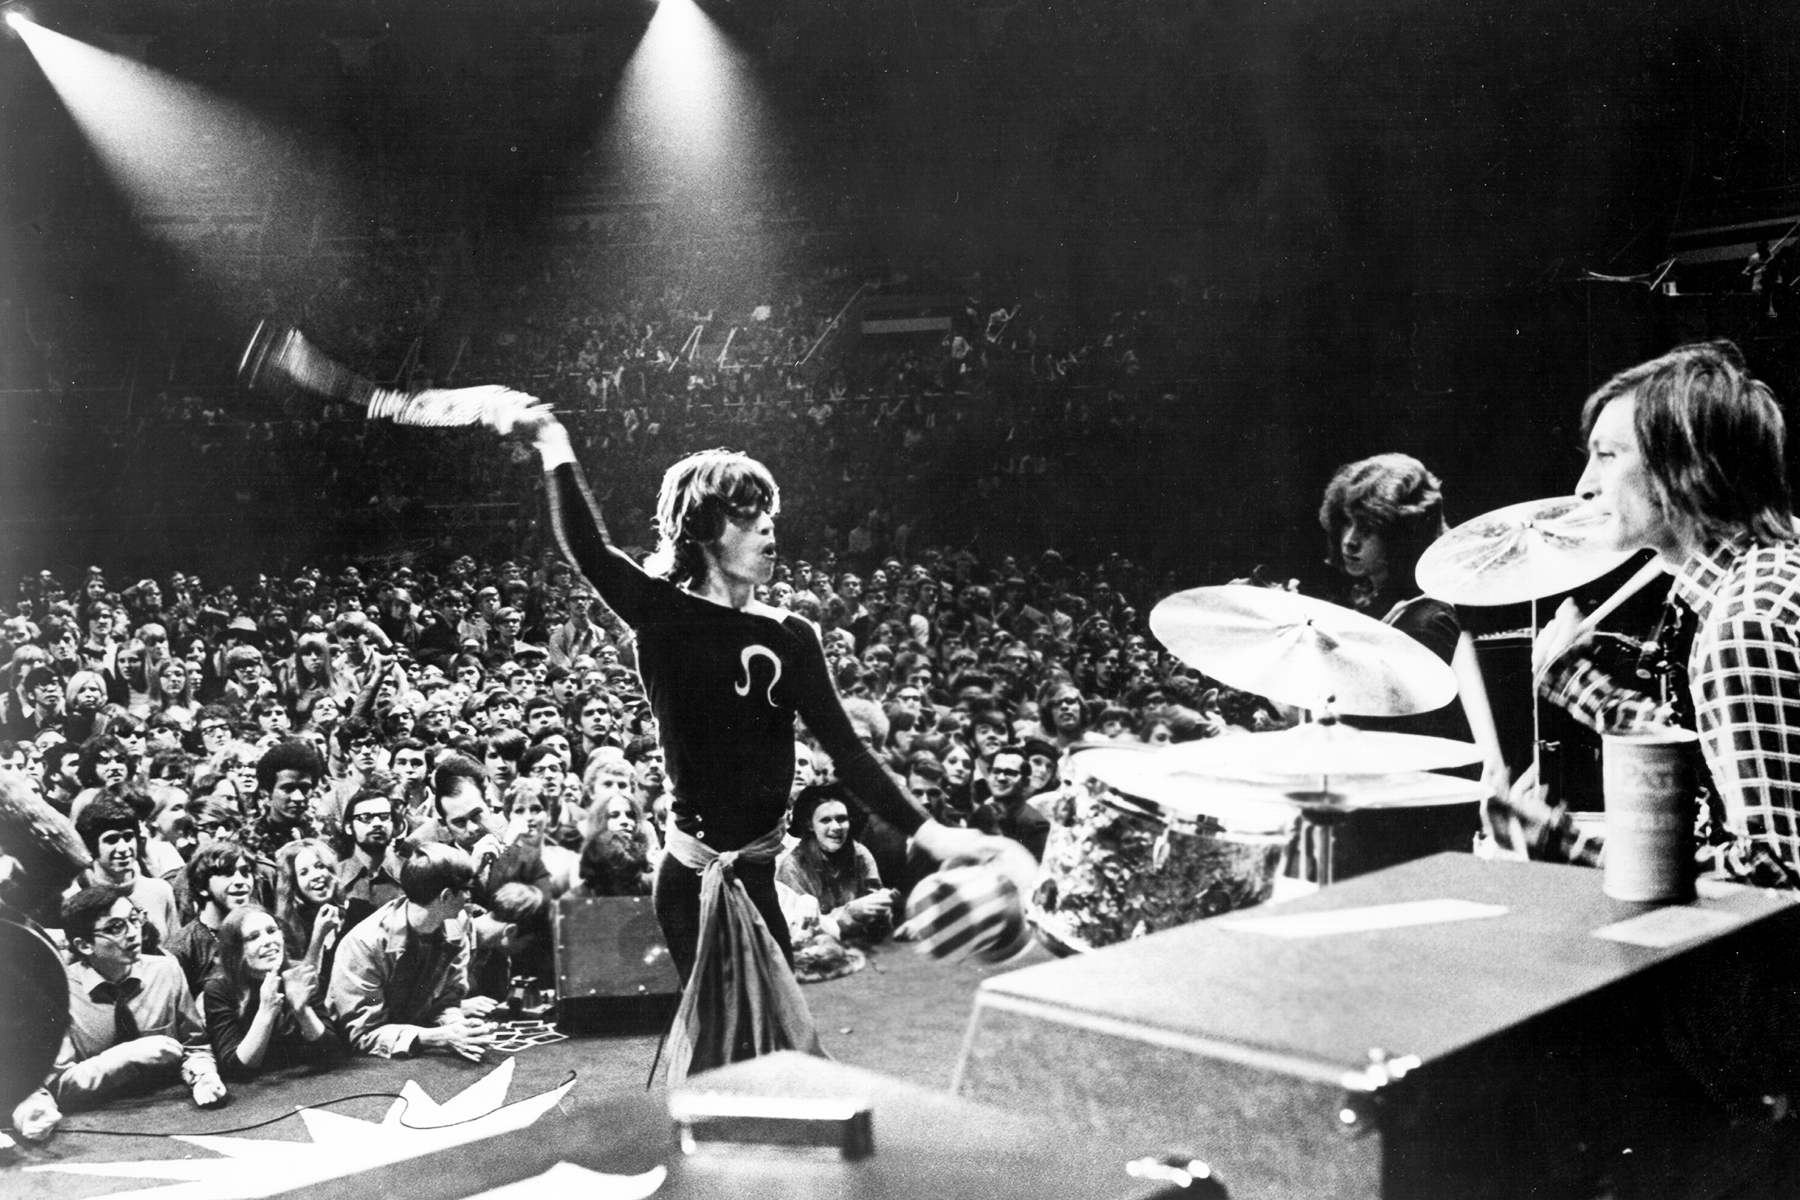 """NEW YORK - NOVEMBER 28: Rock and roll band """"The Rolling Stones"""" perform onstage at Madison Square Garden in a concert that was recorded and later released as the live album """"Get Yer Ya-Ya's Out"""" and also as part of the film """"Gimme Shelter"""" on November 28, 1969 in New York City, New York. (Photo by Michael Ochs Archives/Getty Images)"""